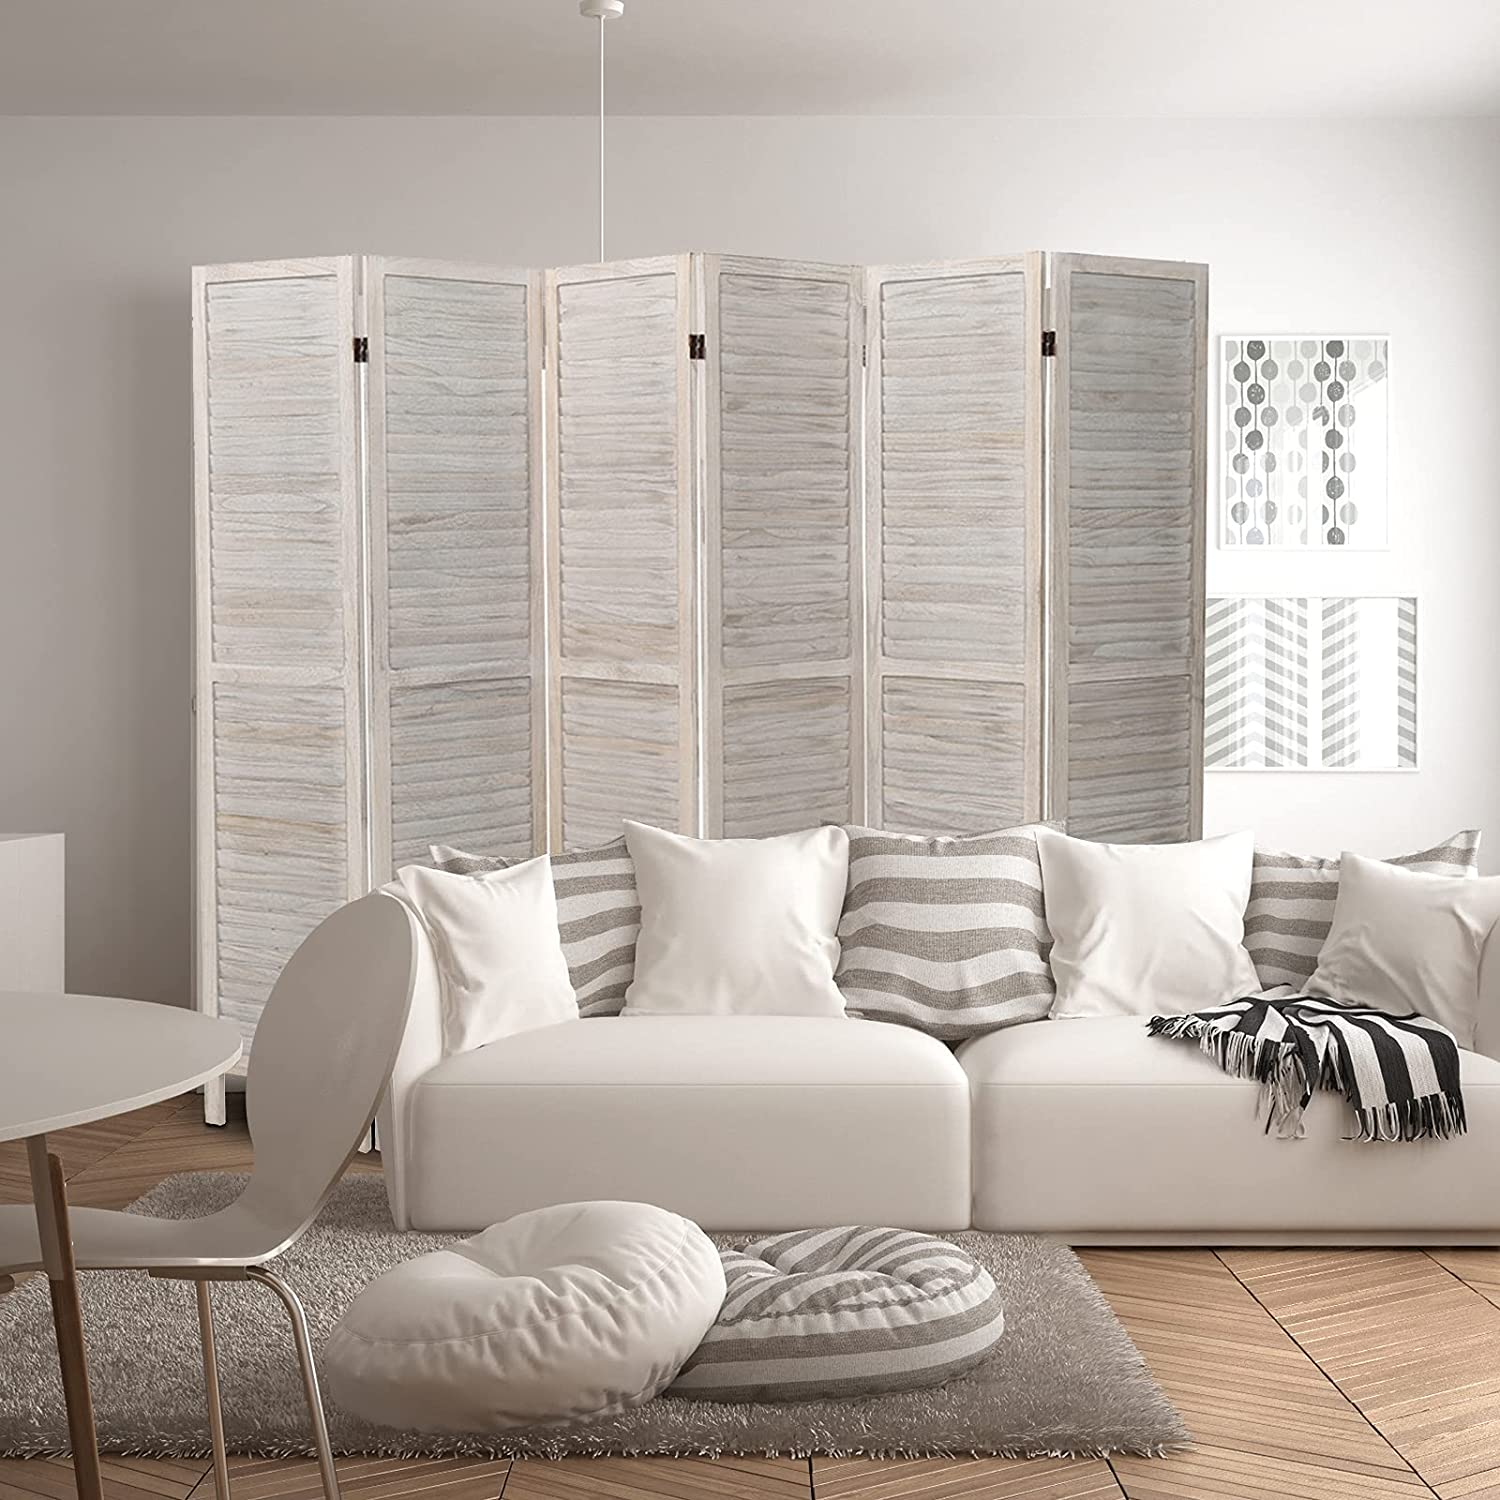 ECOMEX 6 Panel Room Divider Wood 5.6ft High quality new Tall Manufacturer direct delivery Divi Partition